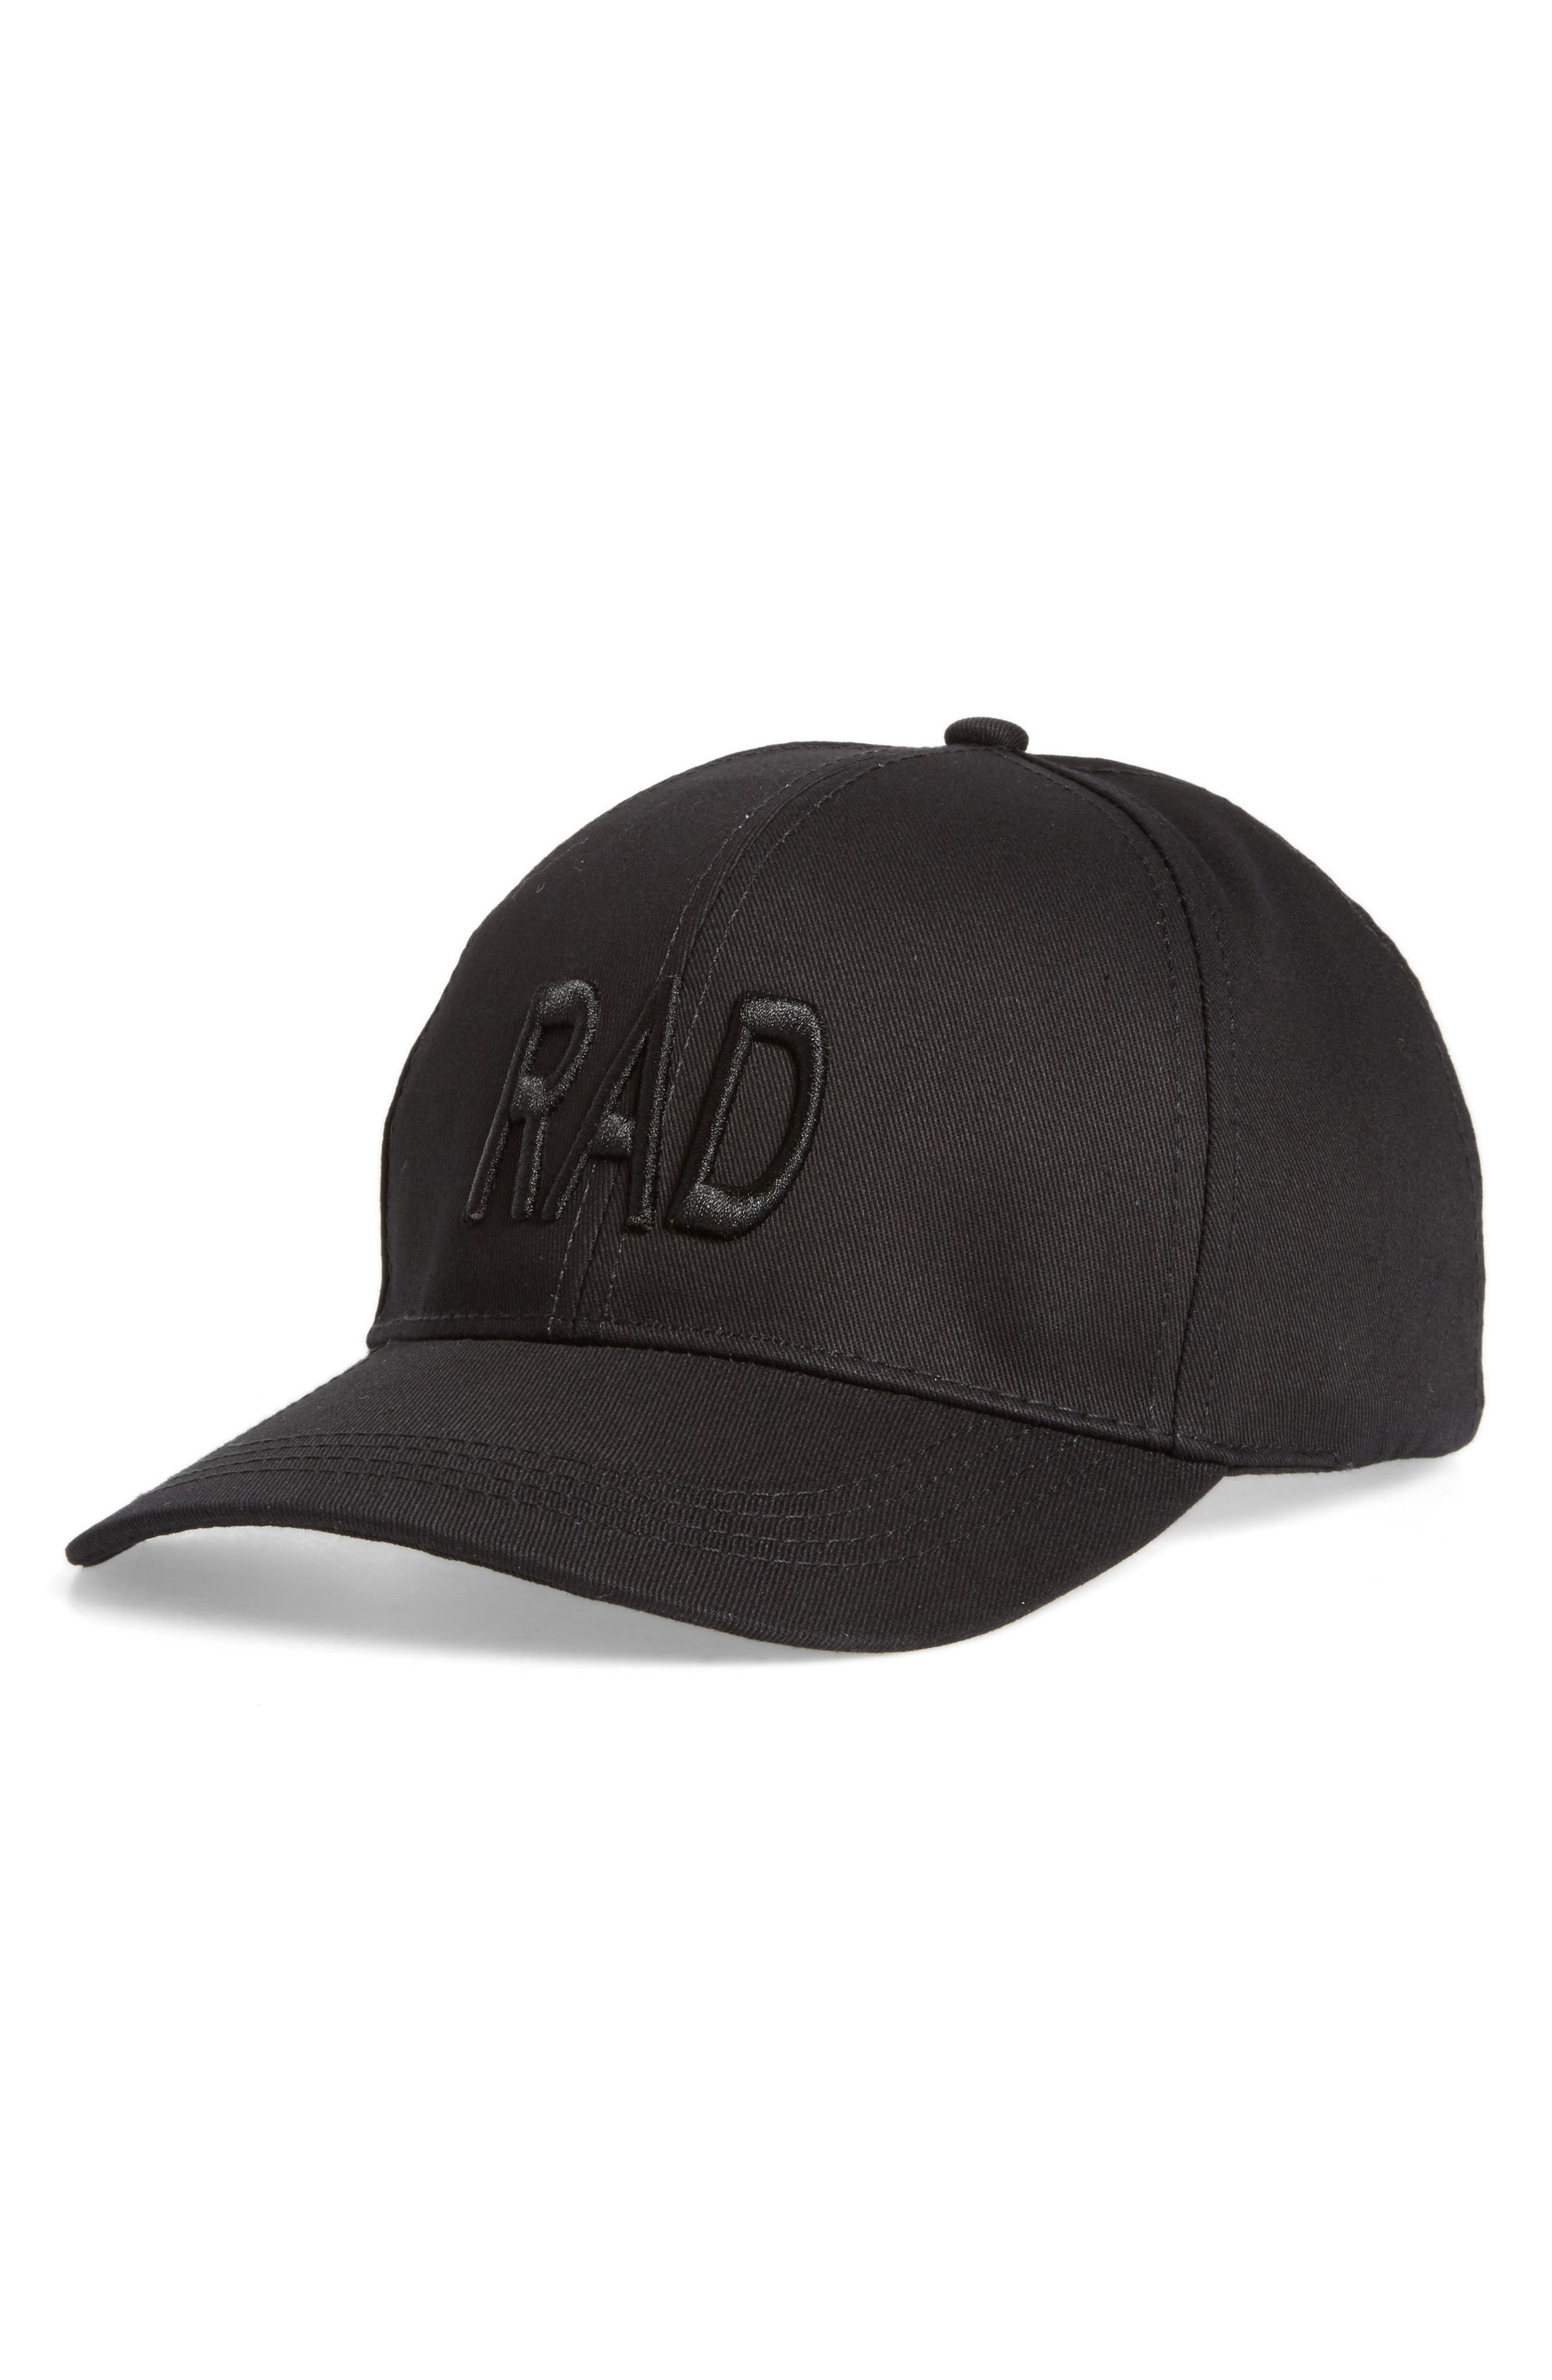 Alternate Image 1 Selected - BP. Embroidered Ball Cap